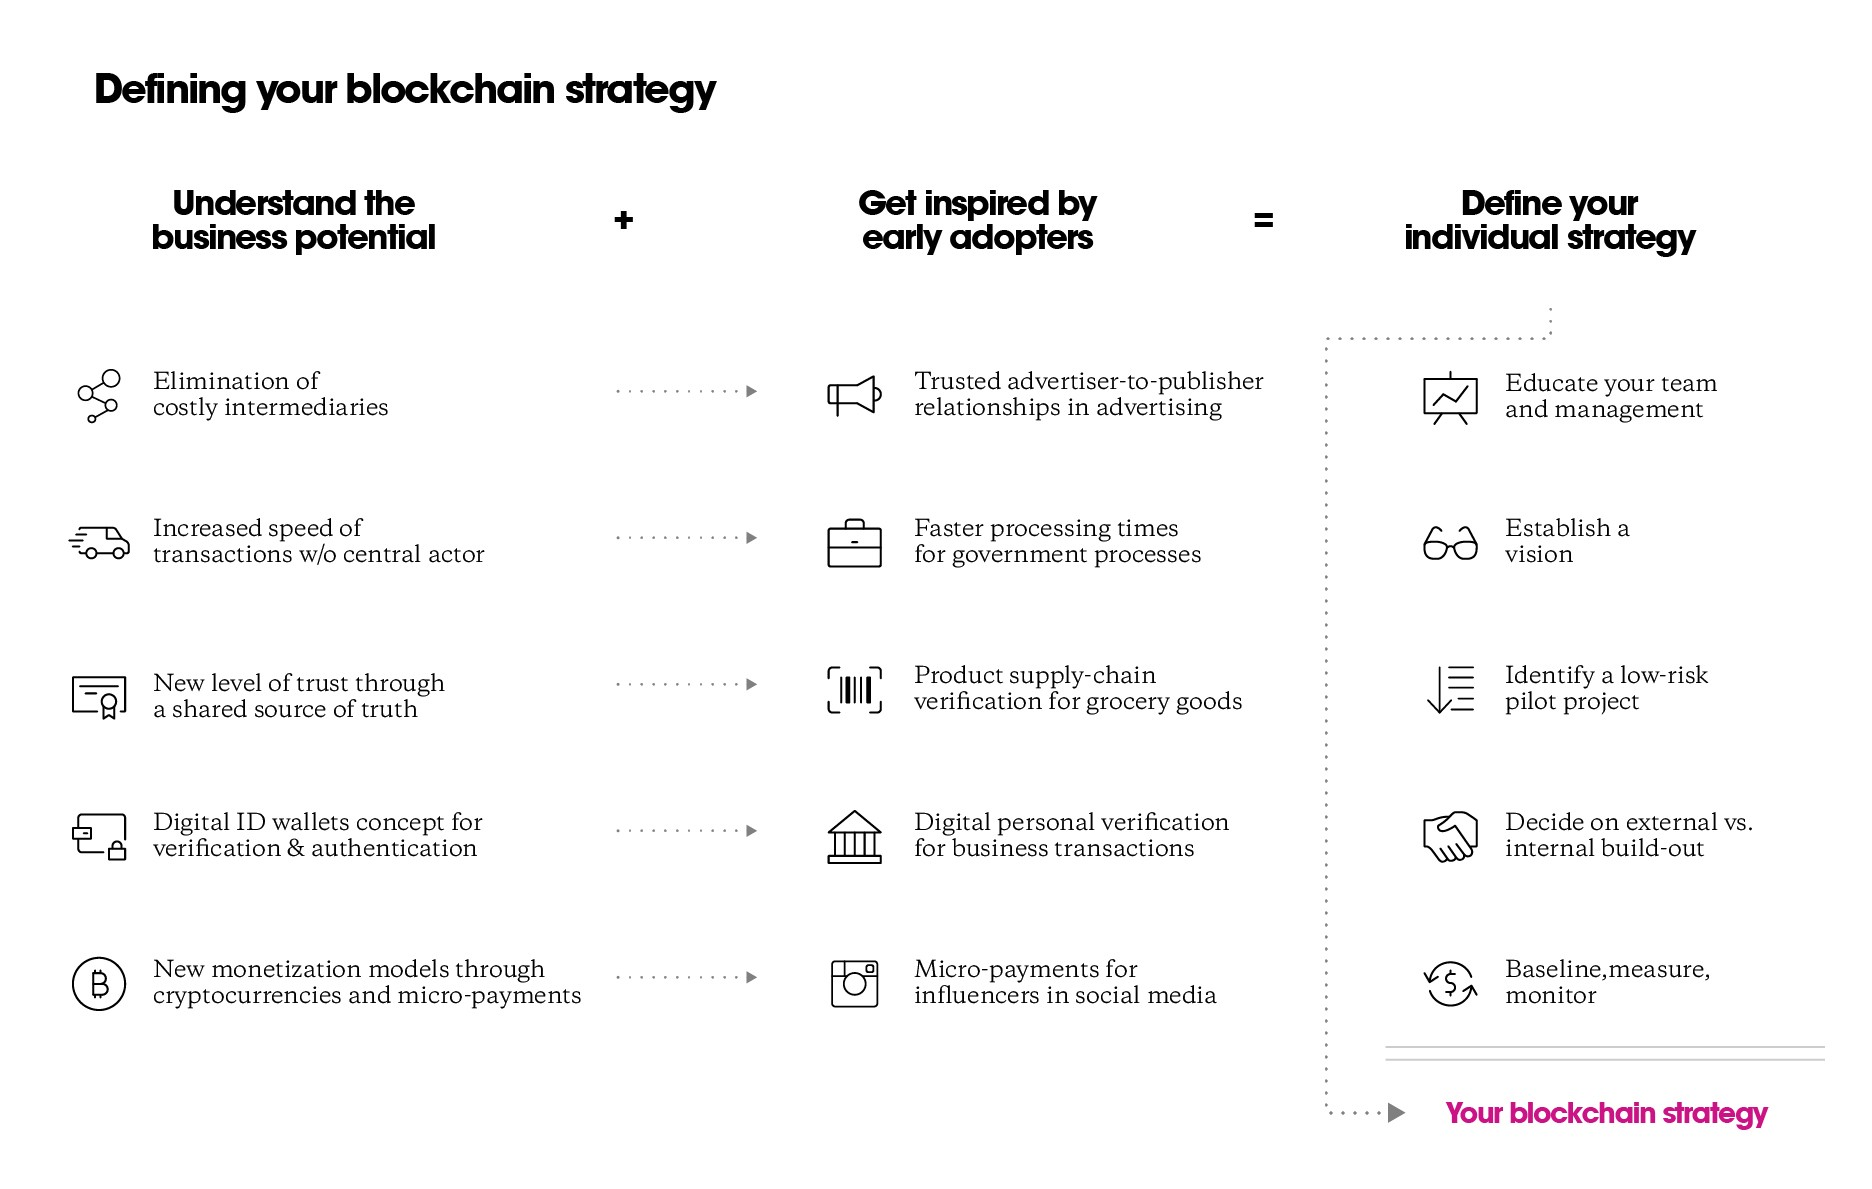 a how-to guide to defining your tailored blockchain strategy